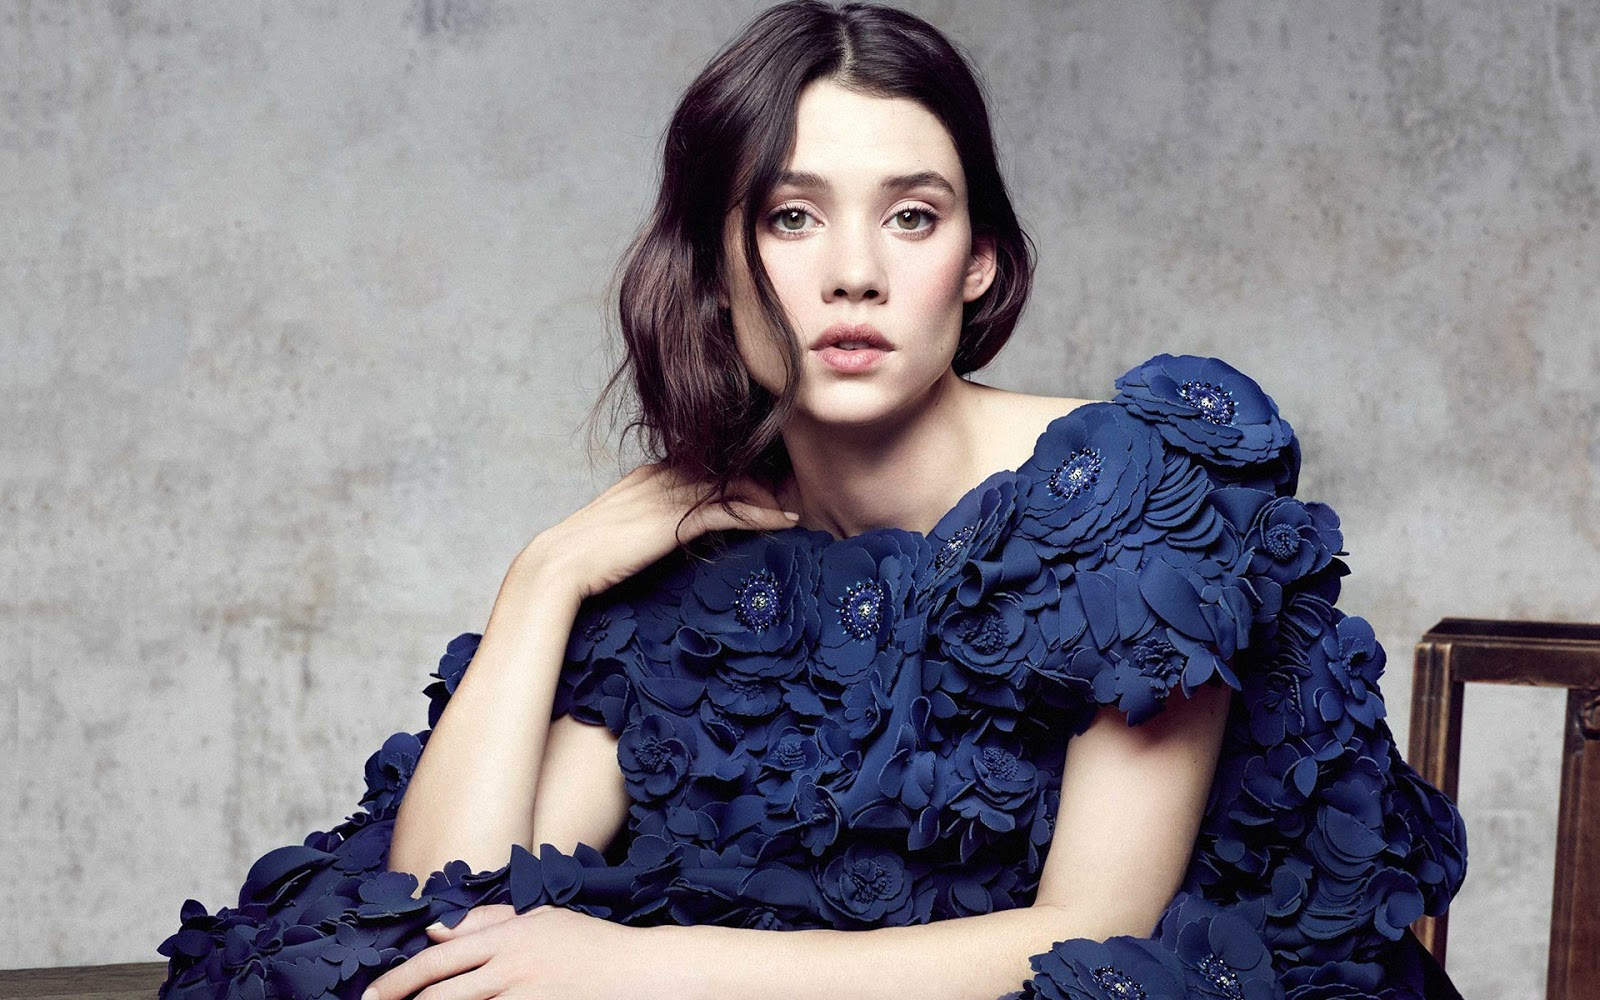 Àstrid Bergès-Frisbey HD Images and Wallpapers - Hollywood Actress